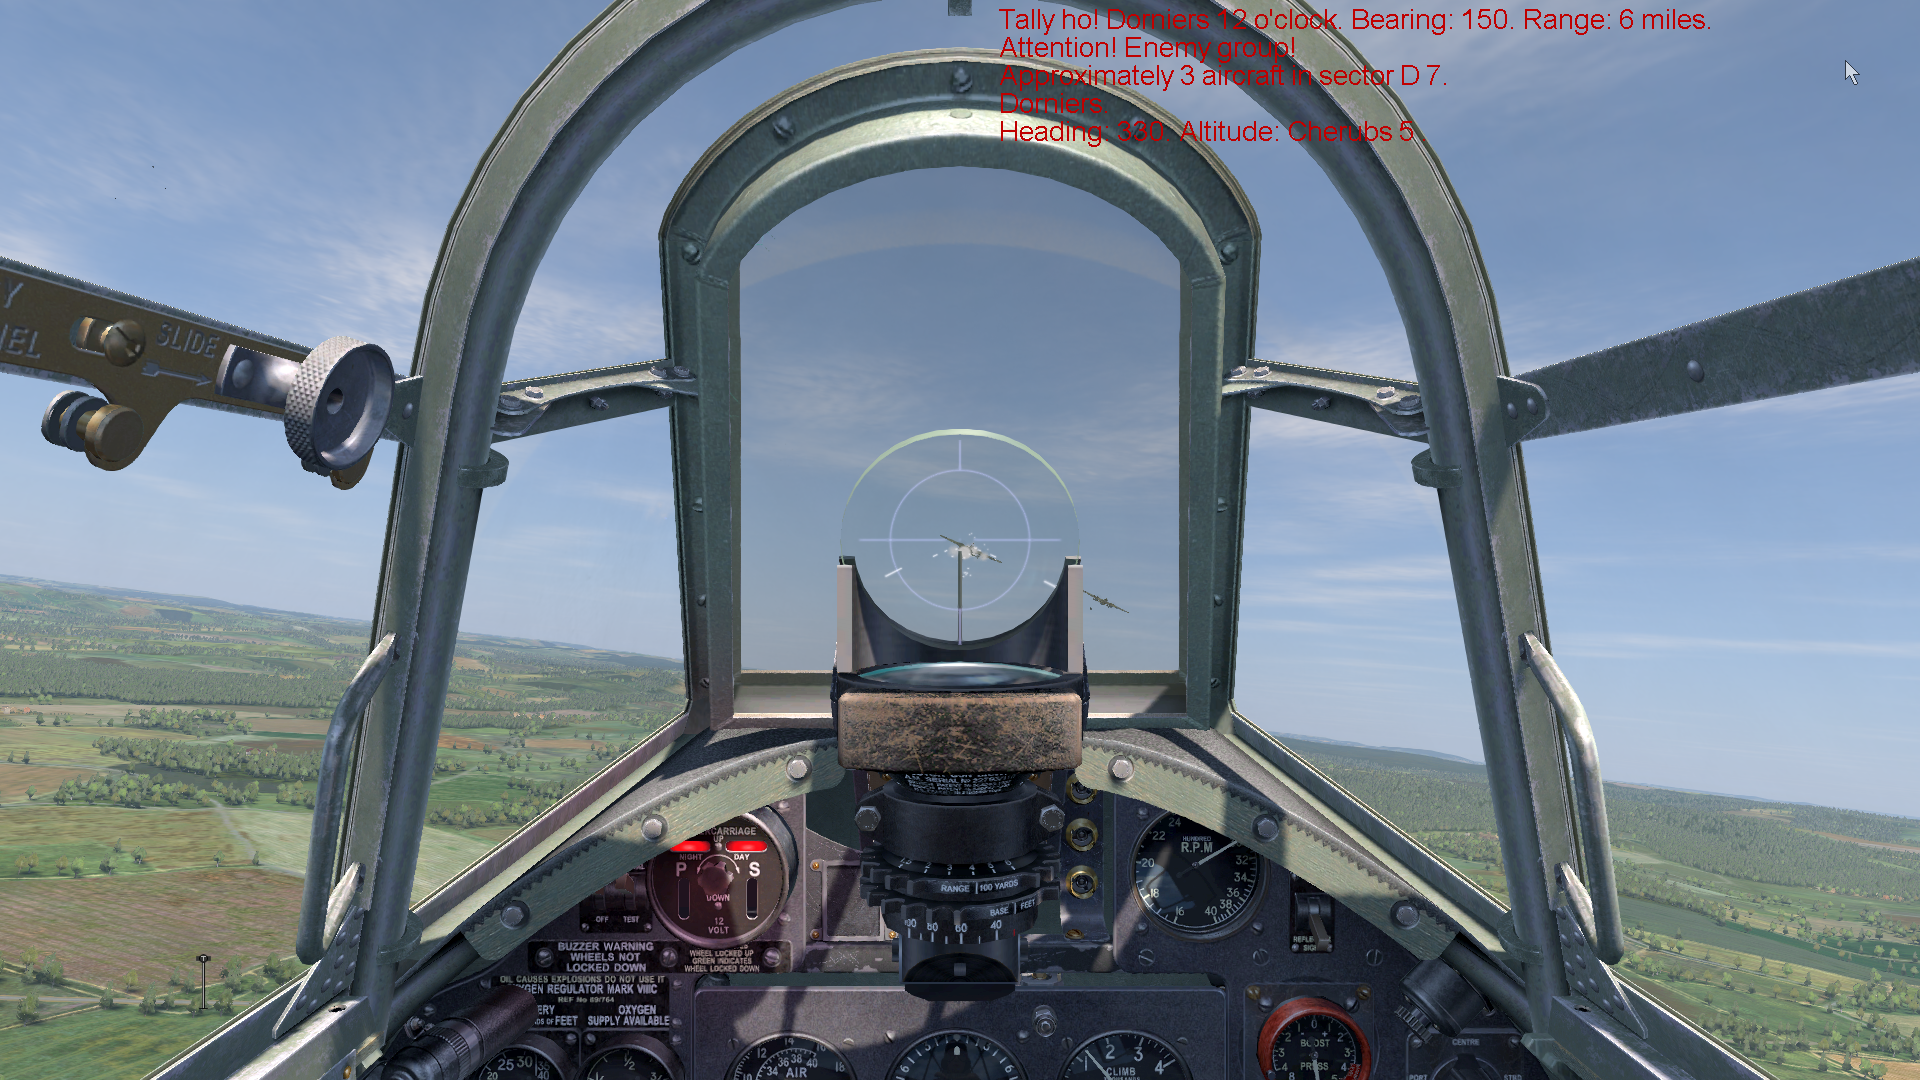 IL-2 Sturmovik: Cliffs of Dover Windows Intercepting a group of Do-215 bombers with my Hurricane.